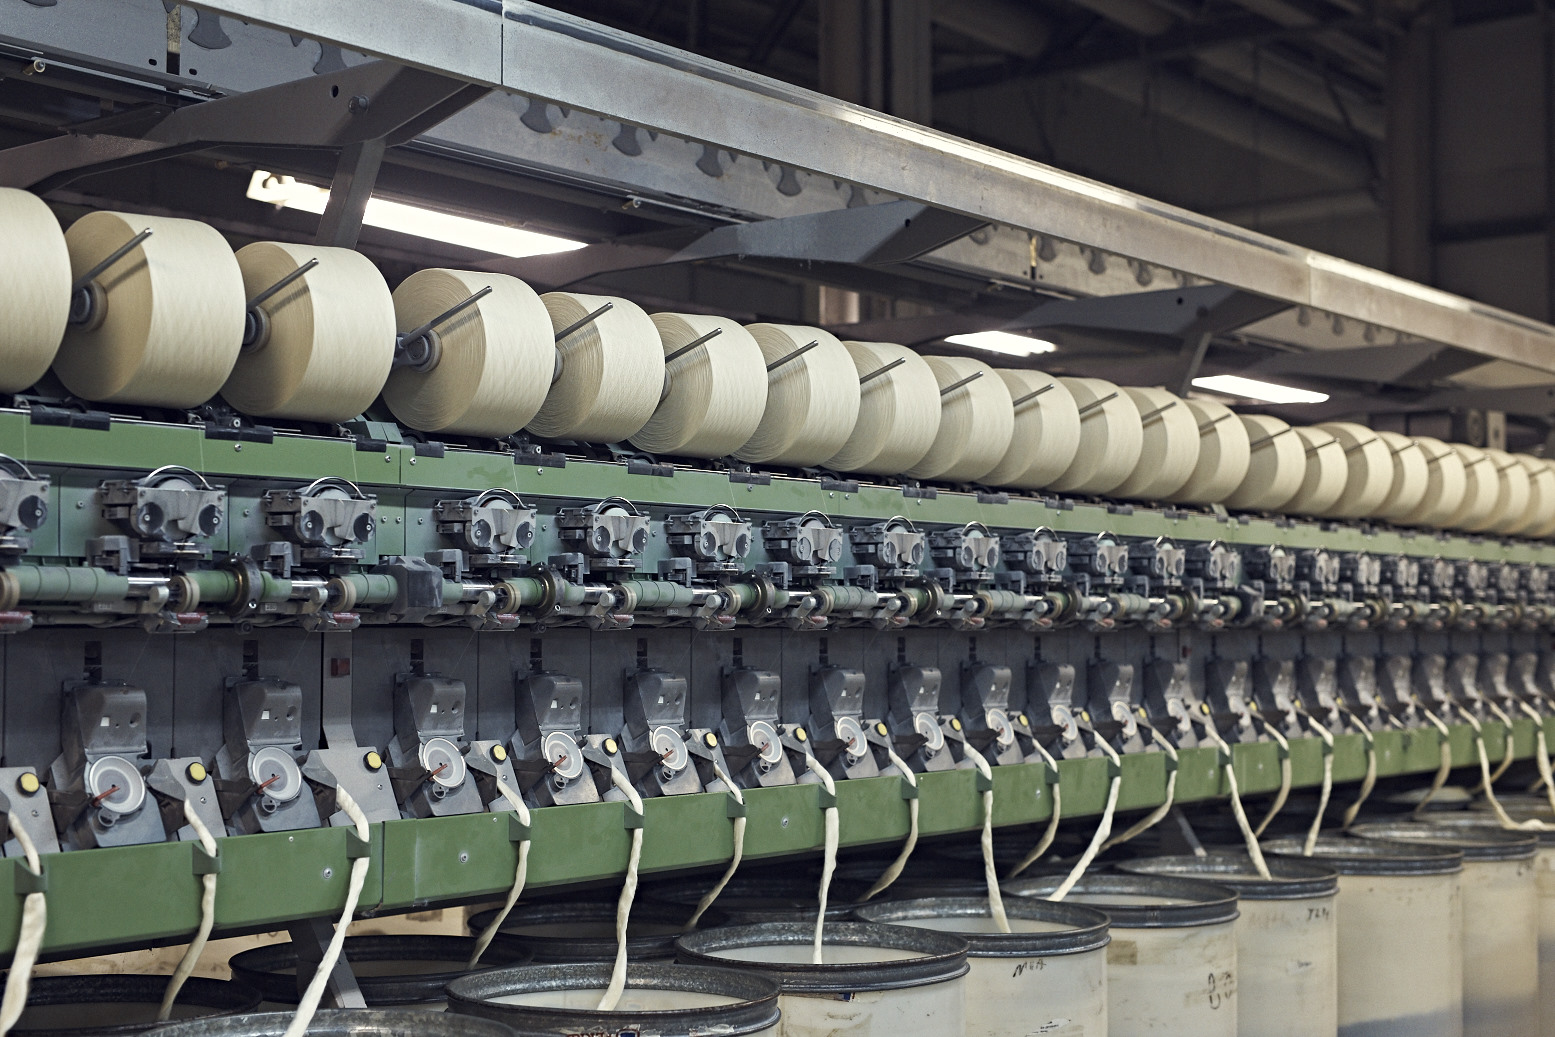 Hilaturas Ferre: The mill that makes the Recover yarn